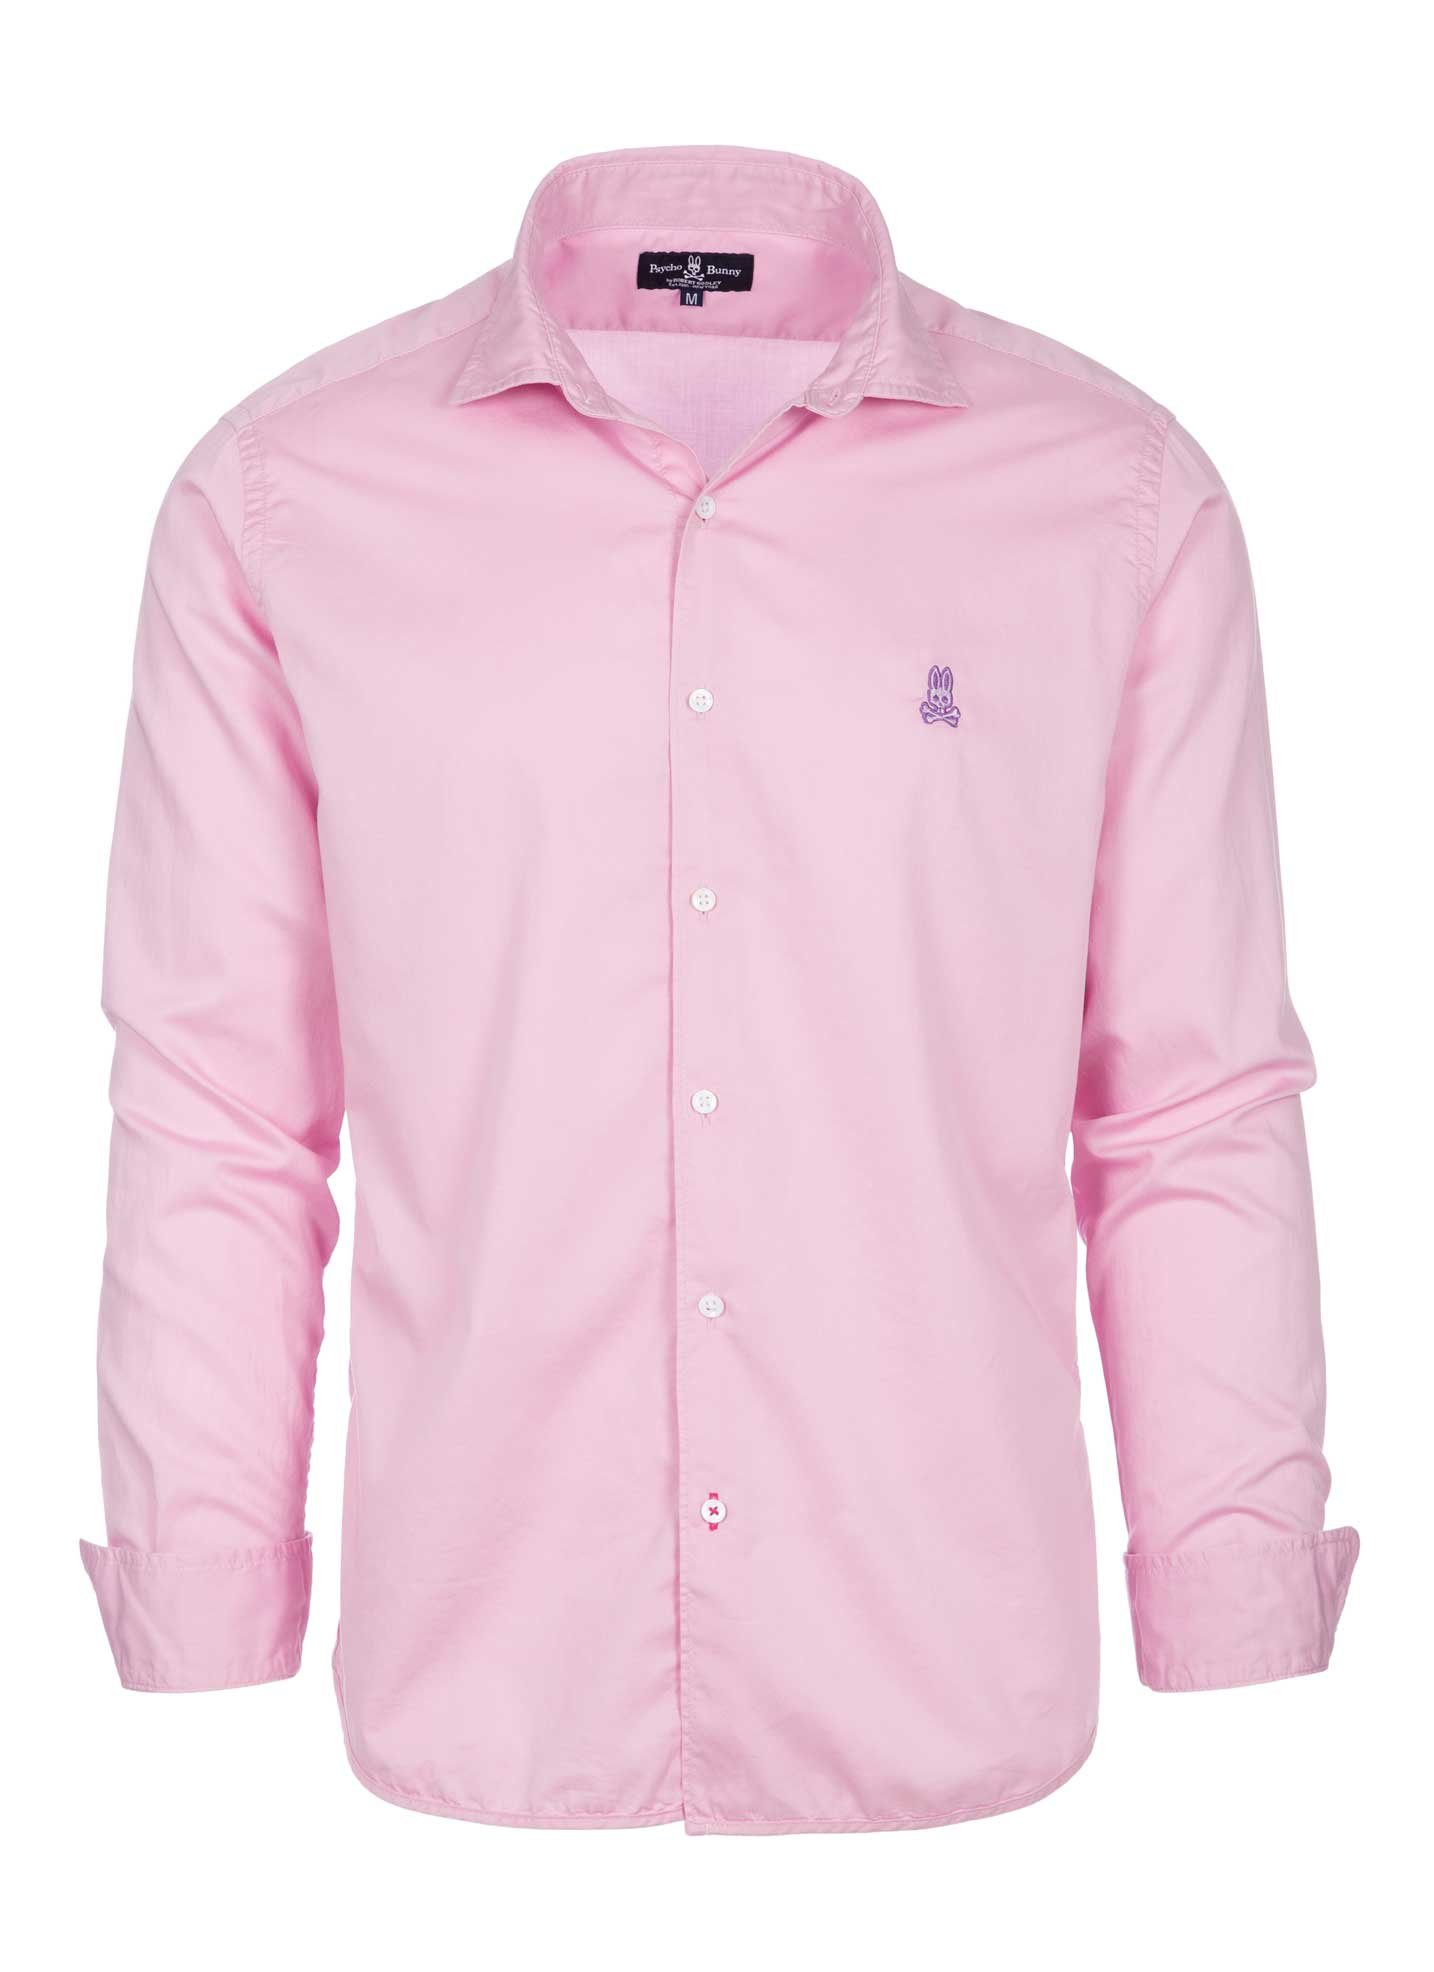 Psycho Bunny Men's Cotton Sport Shirt (Pinkle, XL)